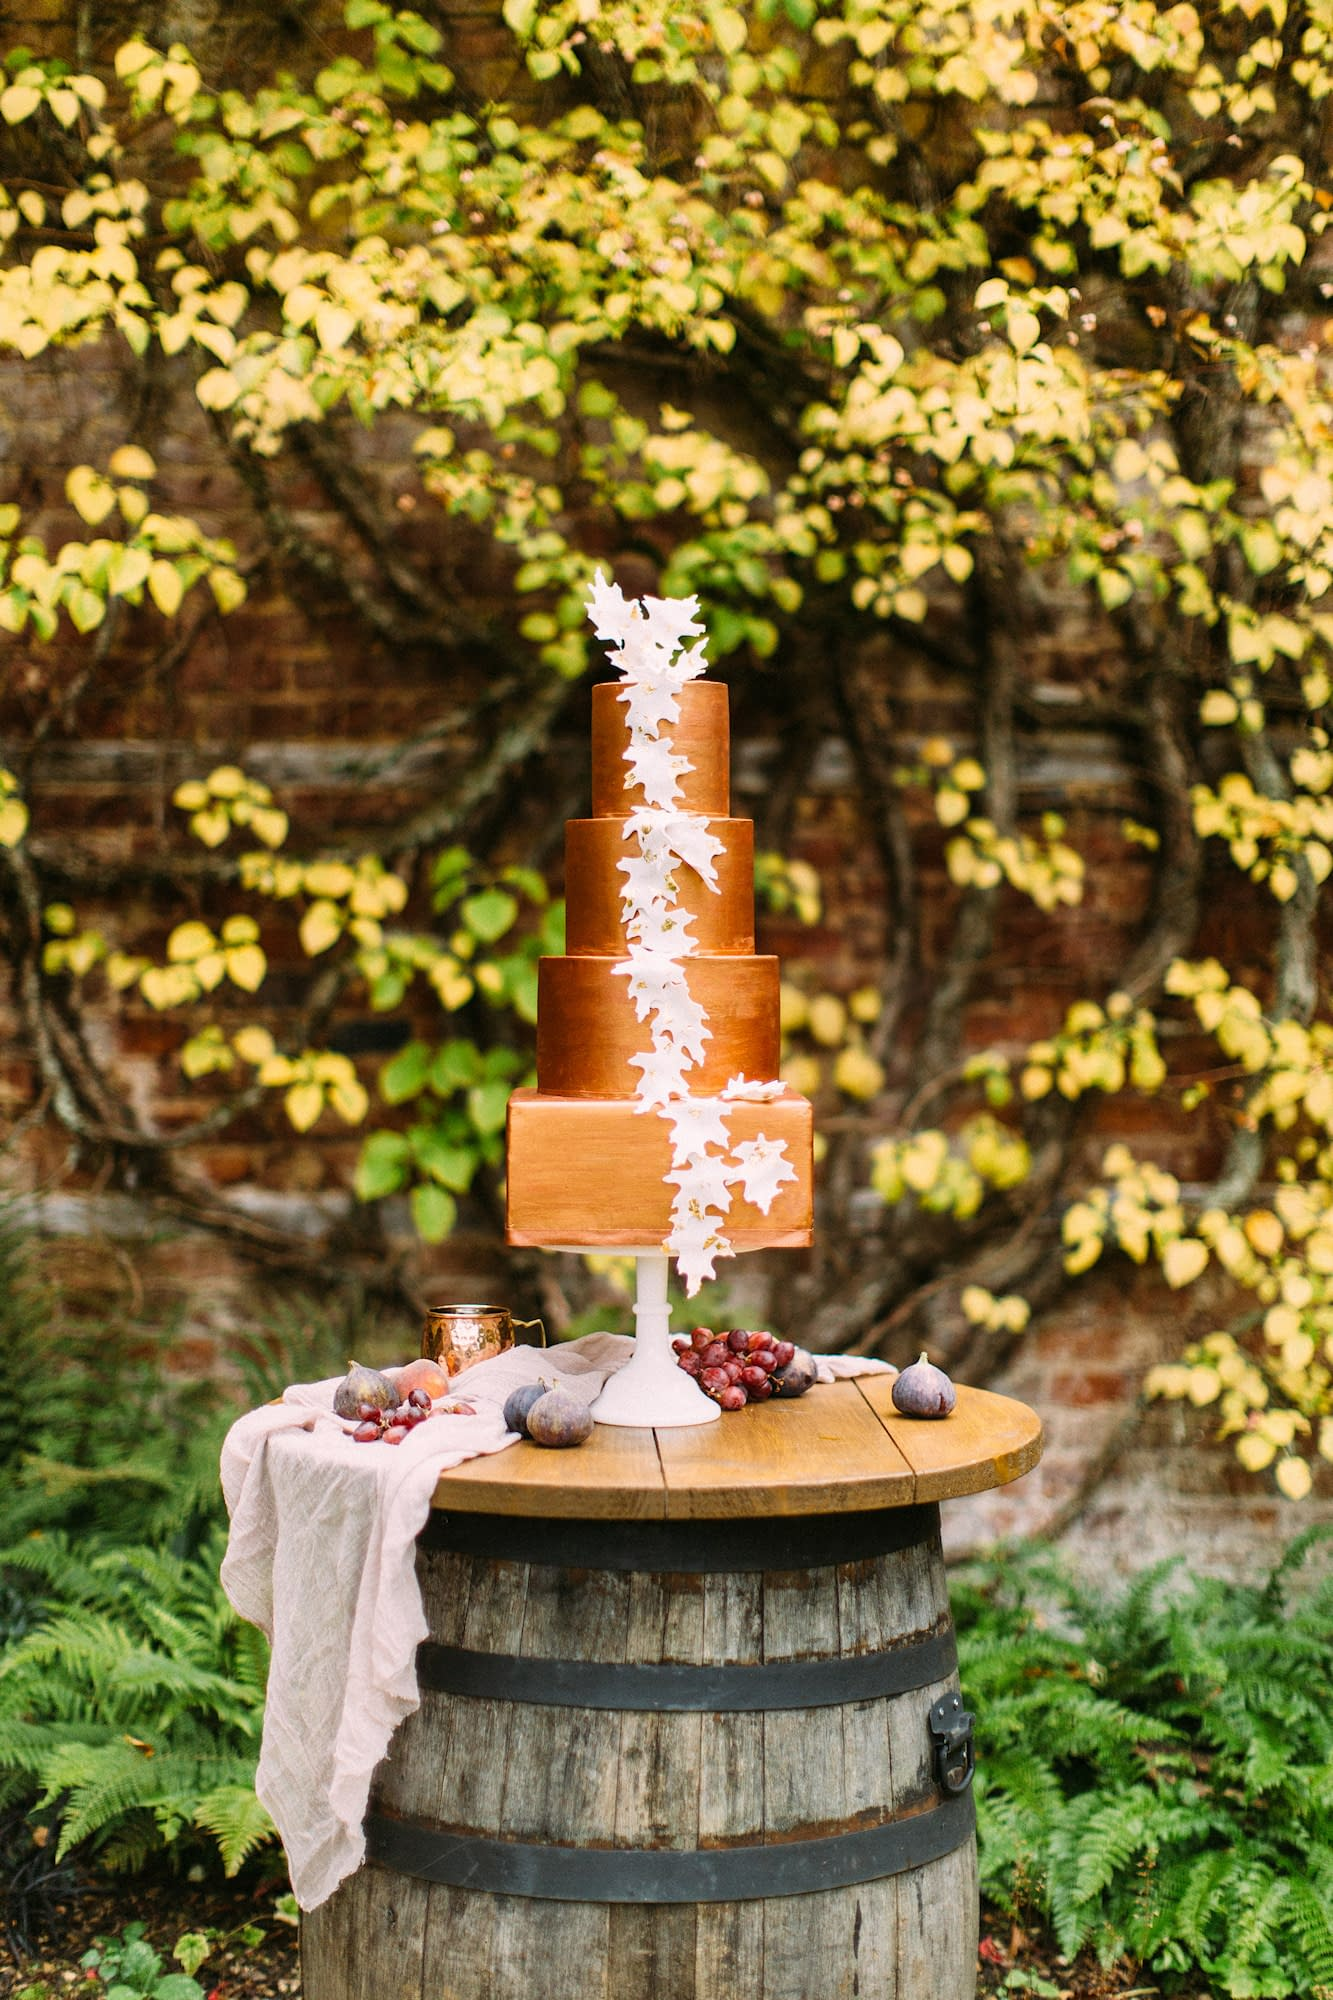 Barrel poseur table with gorgeous cake display for an autumnal wedding shoot at Farley Estate in Hampshire UK